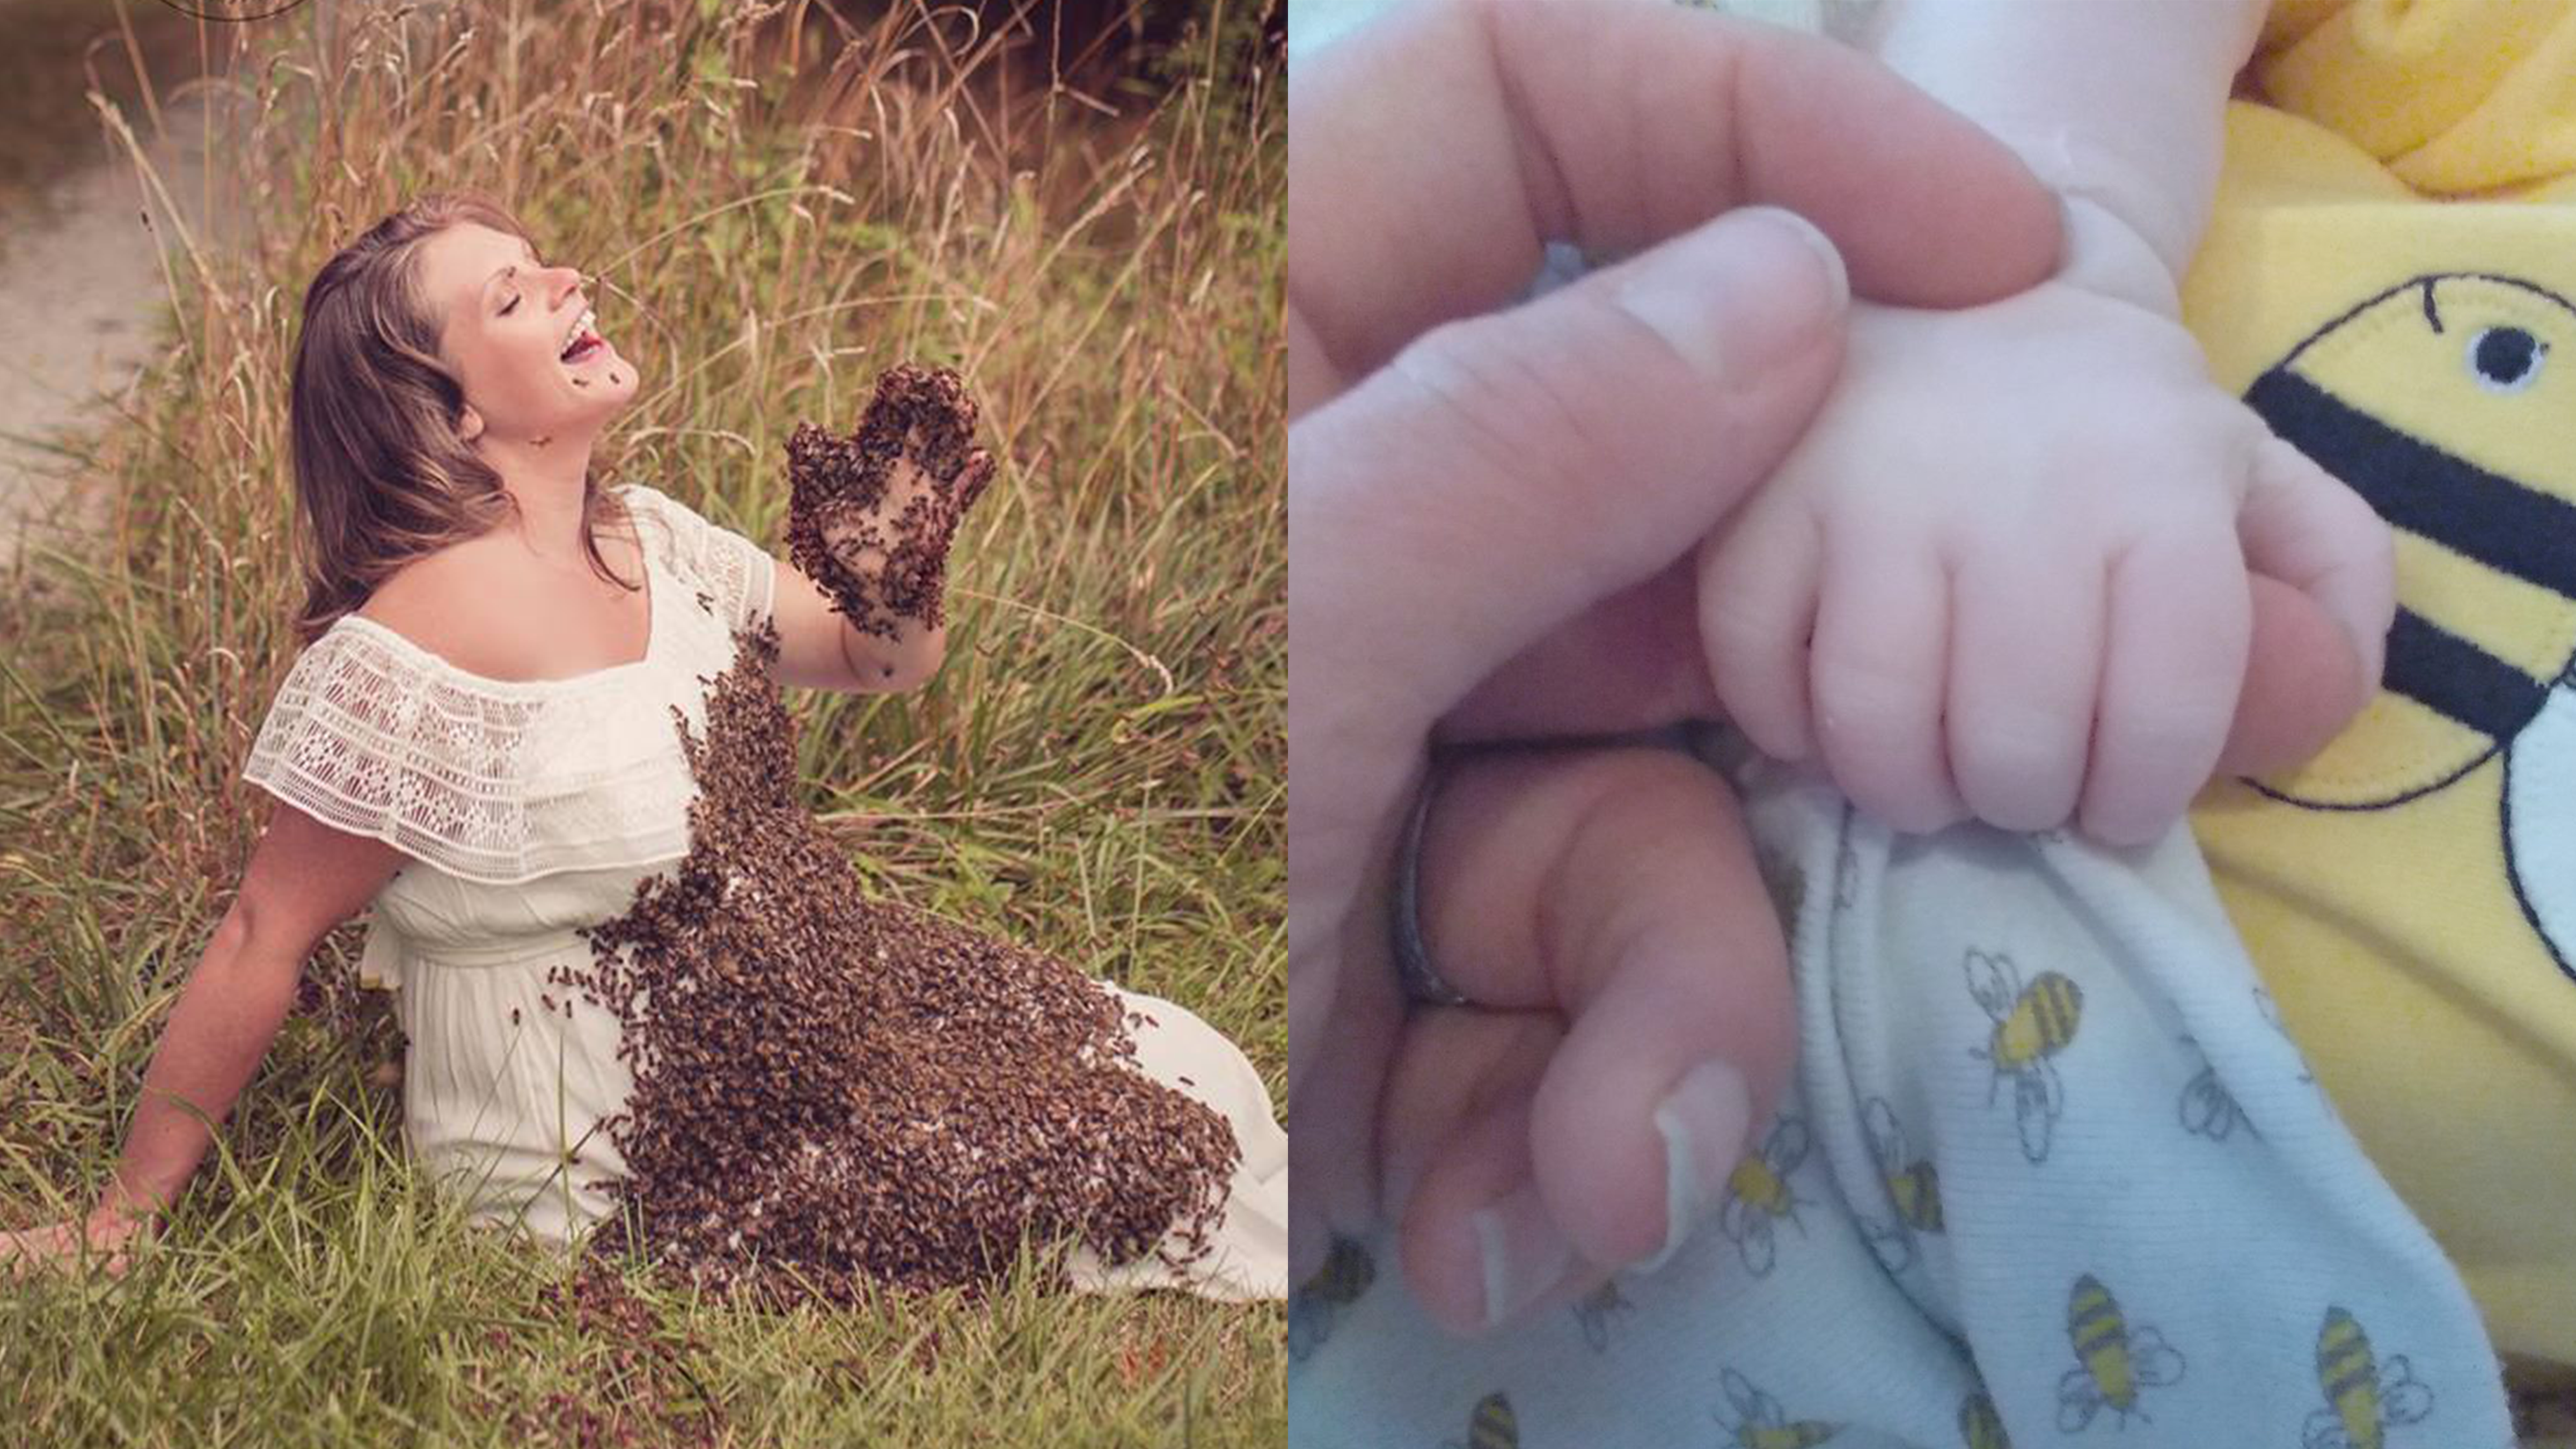 Akron woman in viral bee maternity photo loses baby